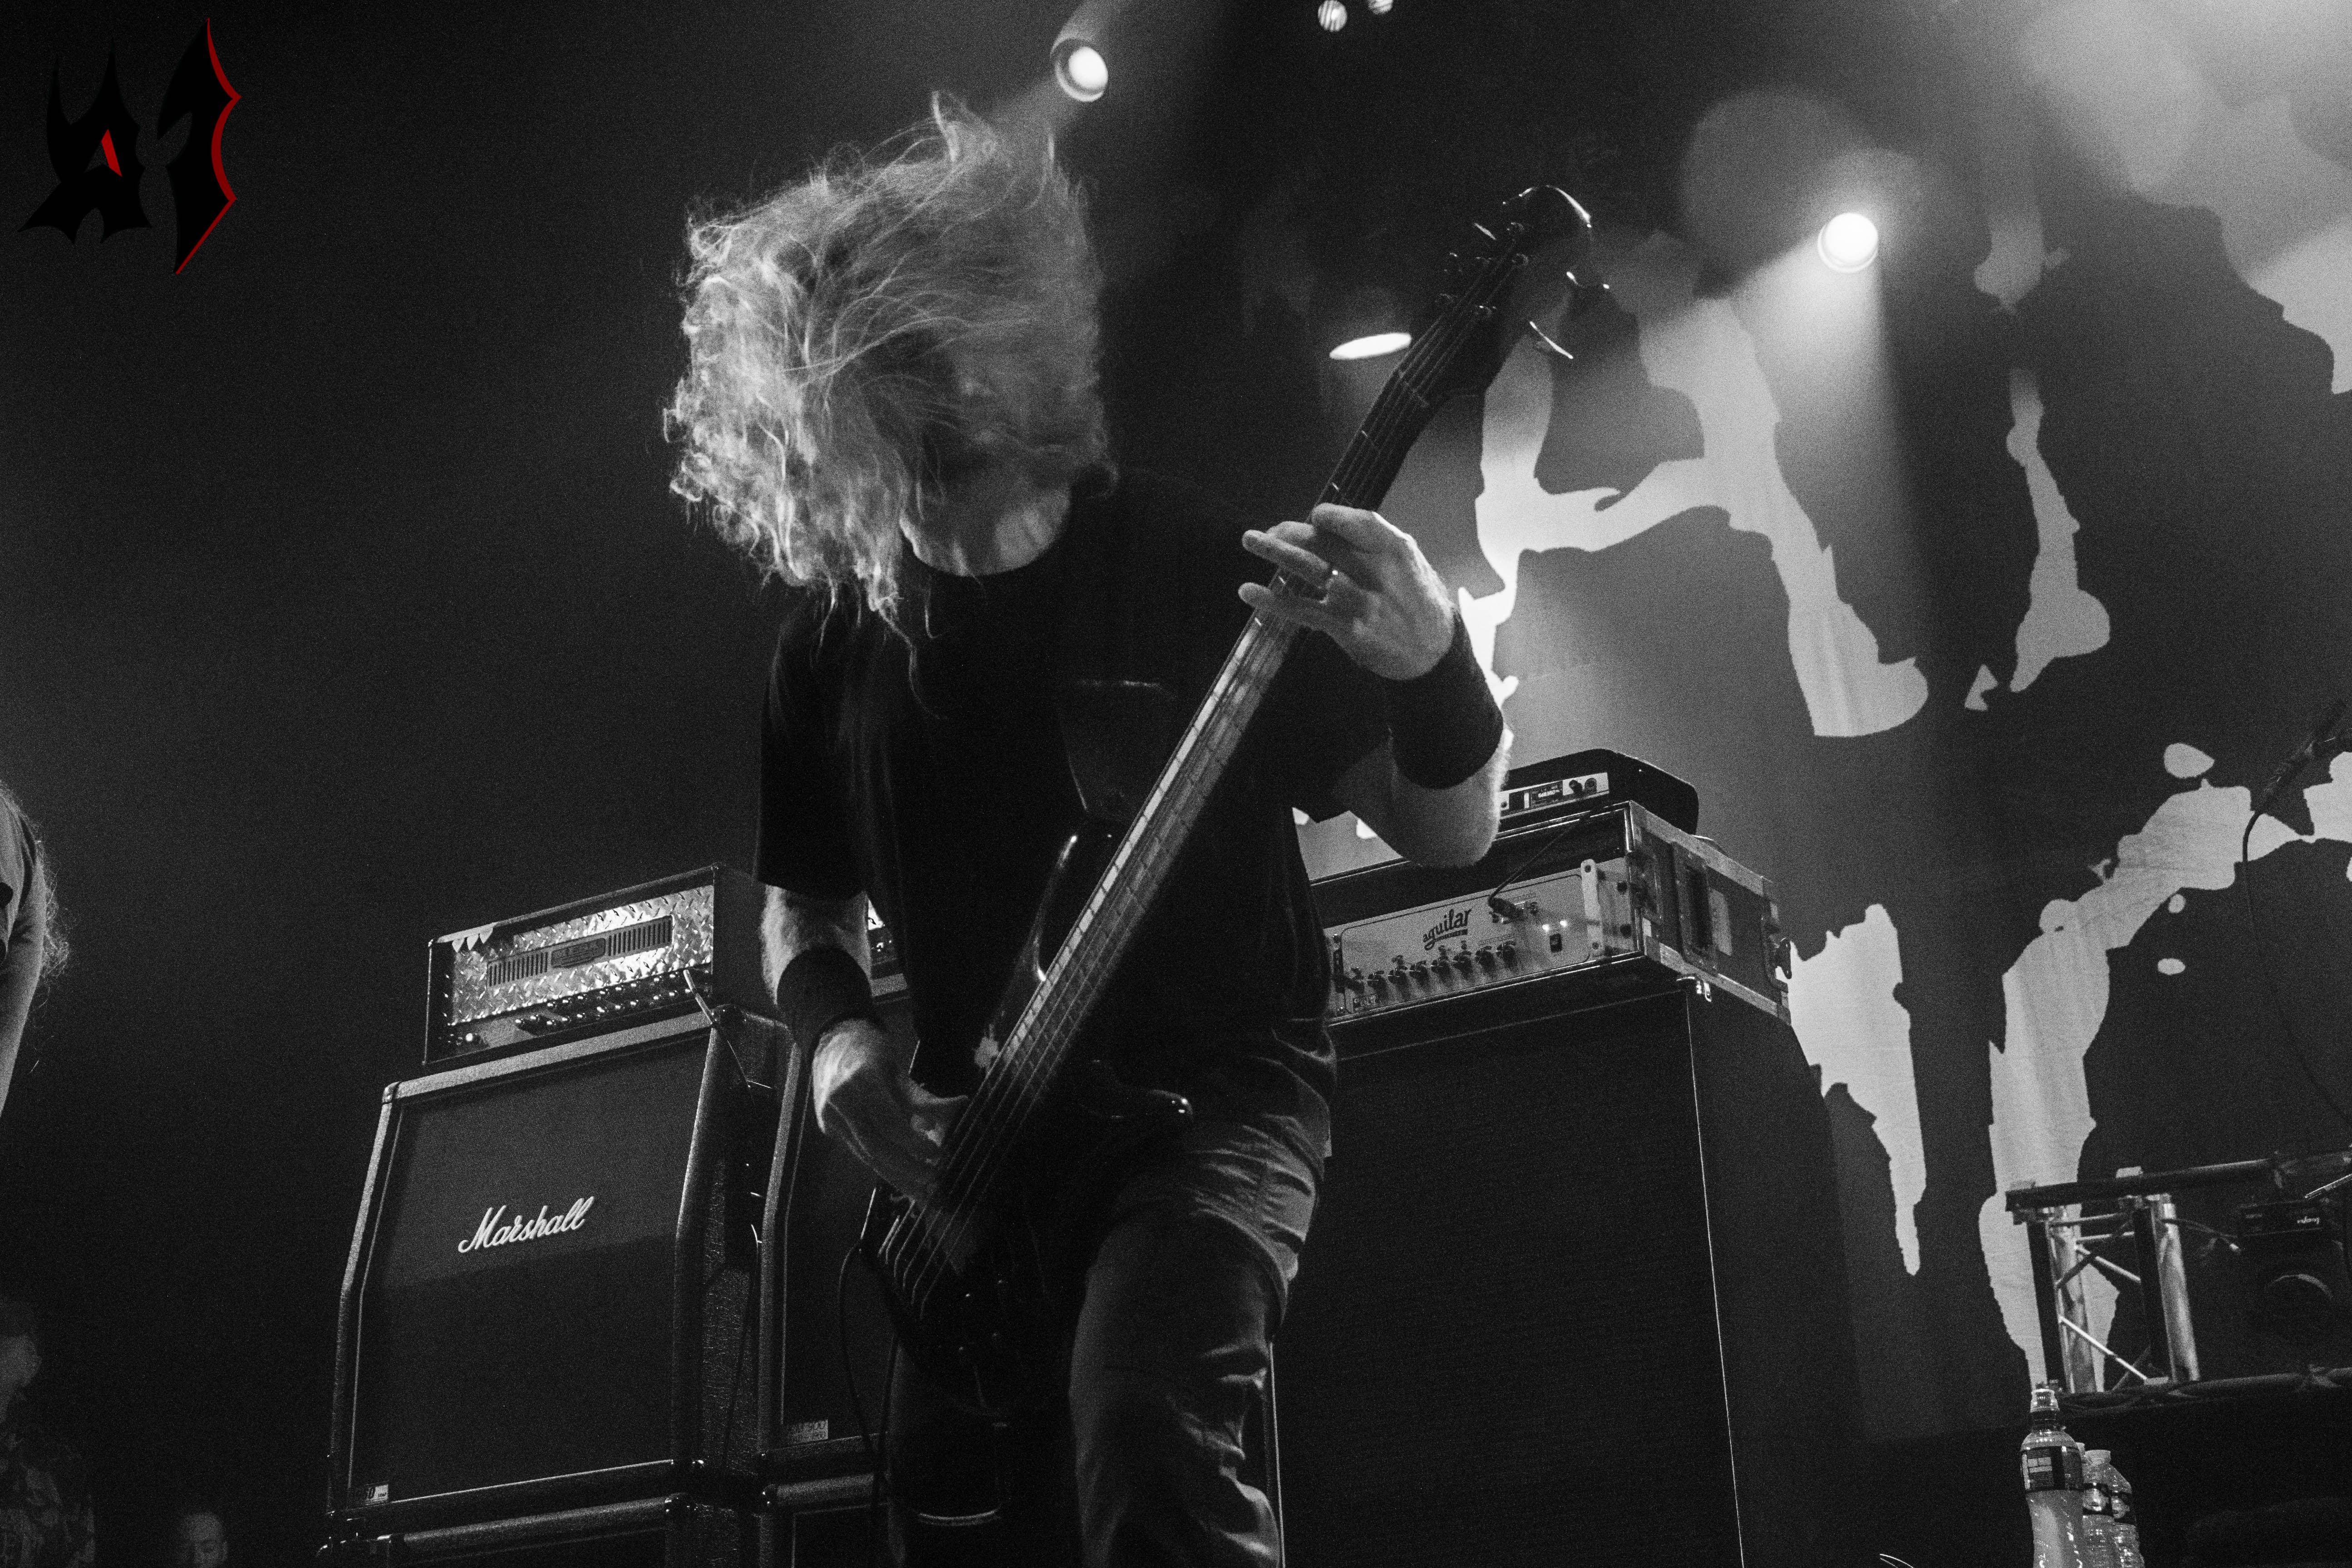 Motocultor 2018 – Day 2 - Cannibal Corpse 13